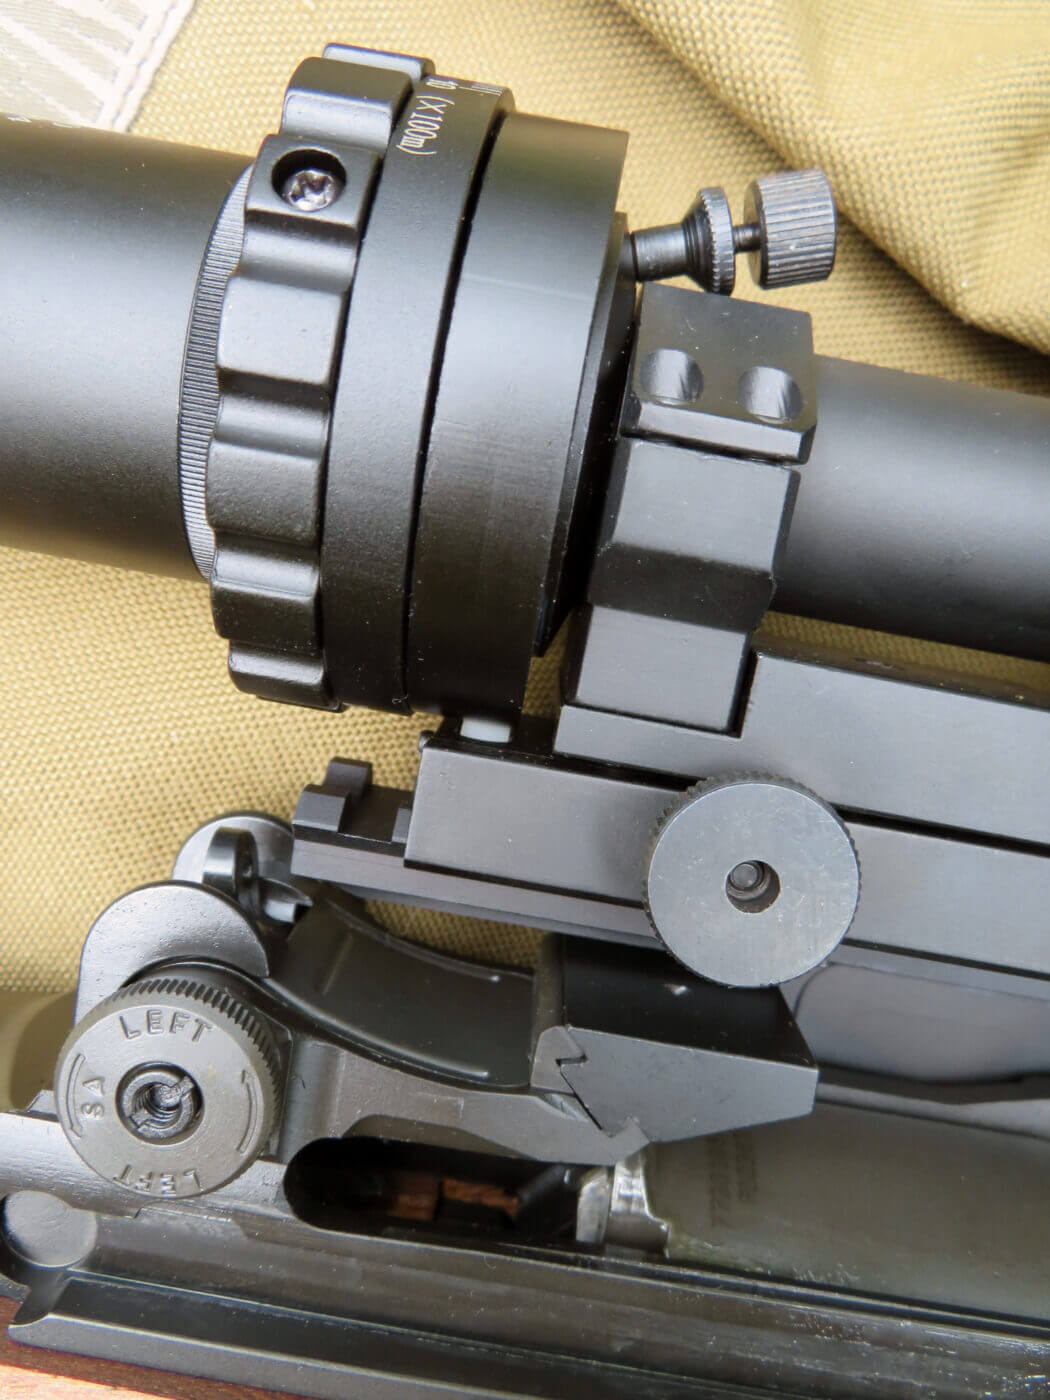 Magnification ring on ART rifle scope